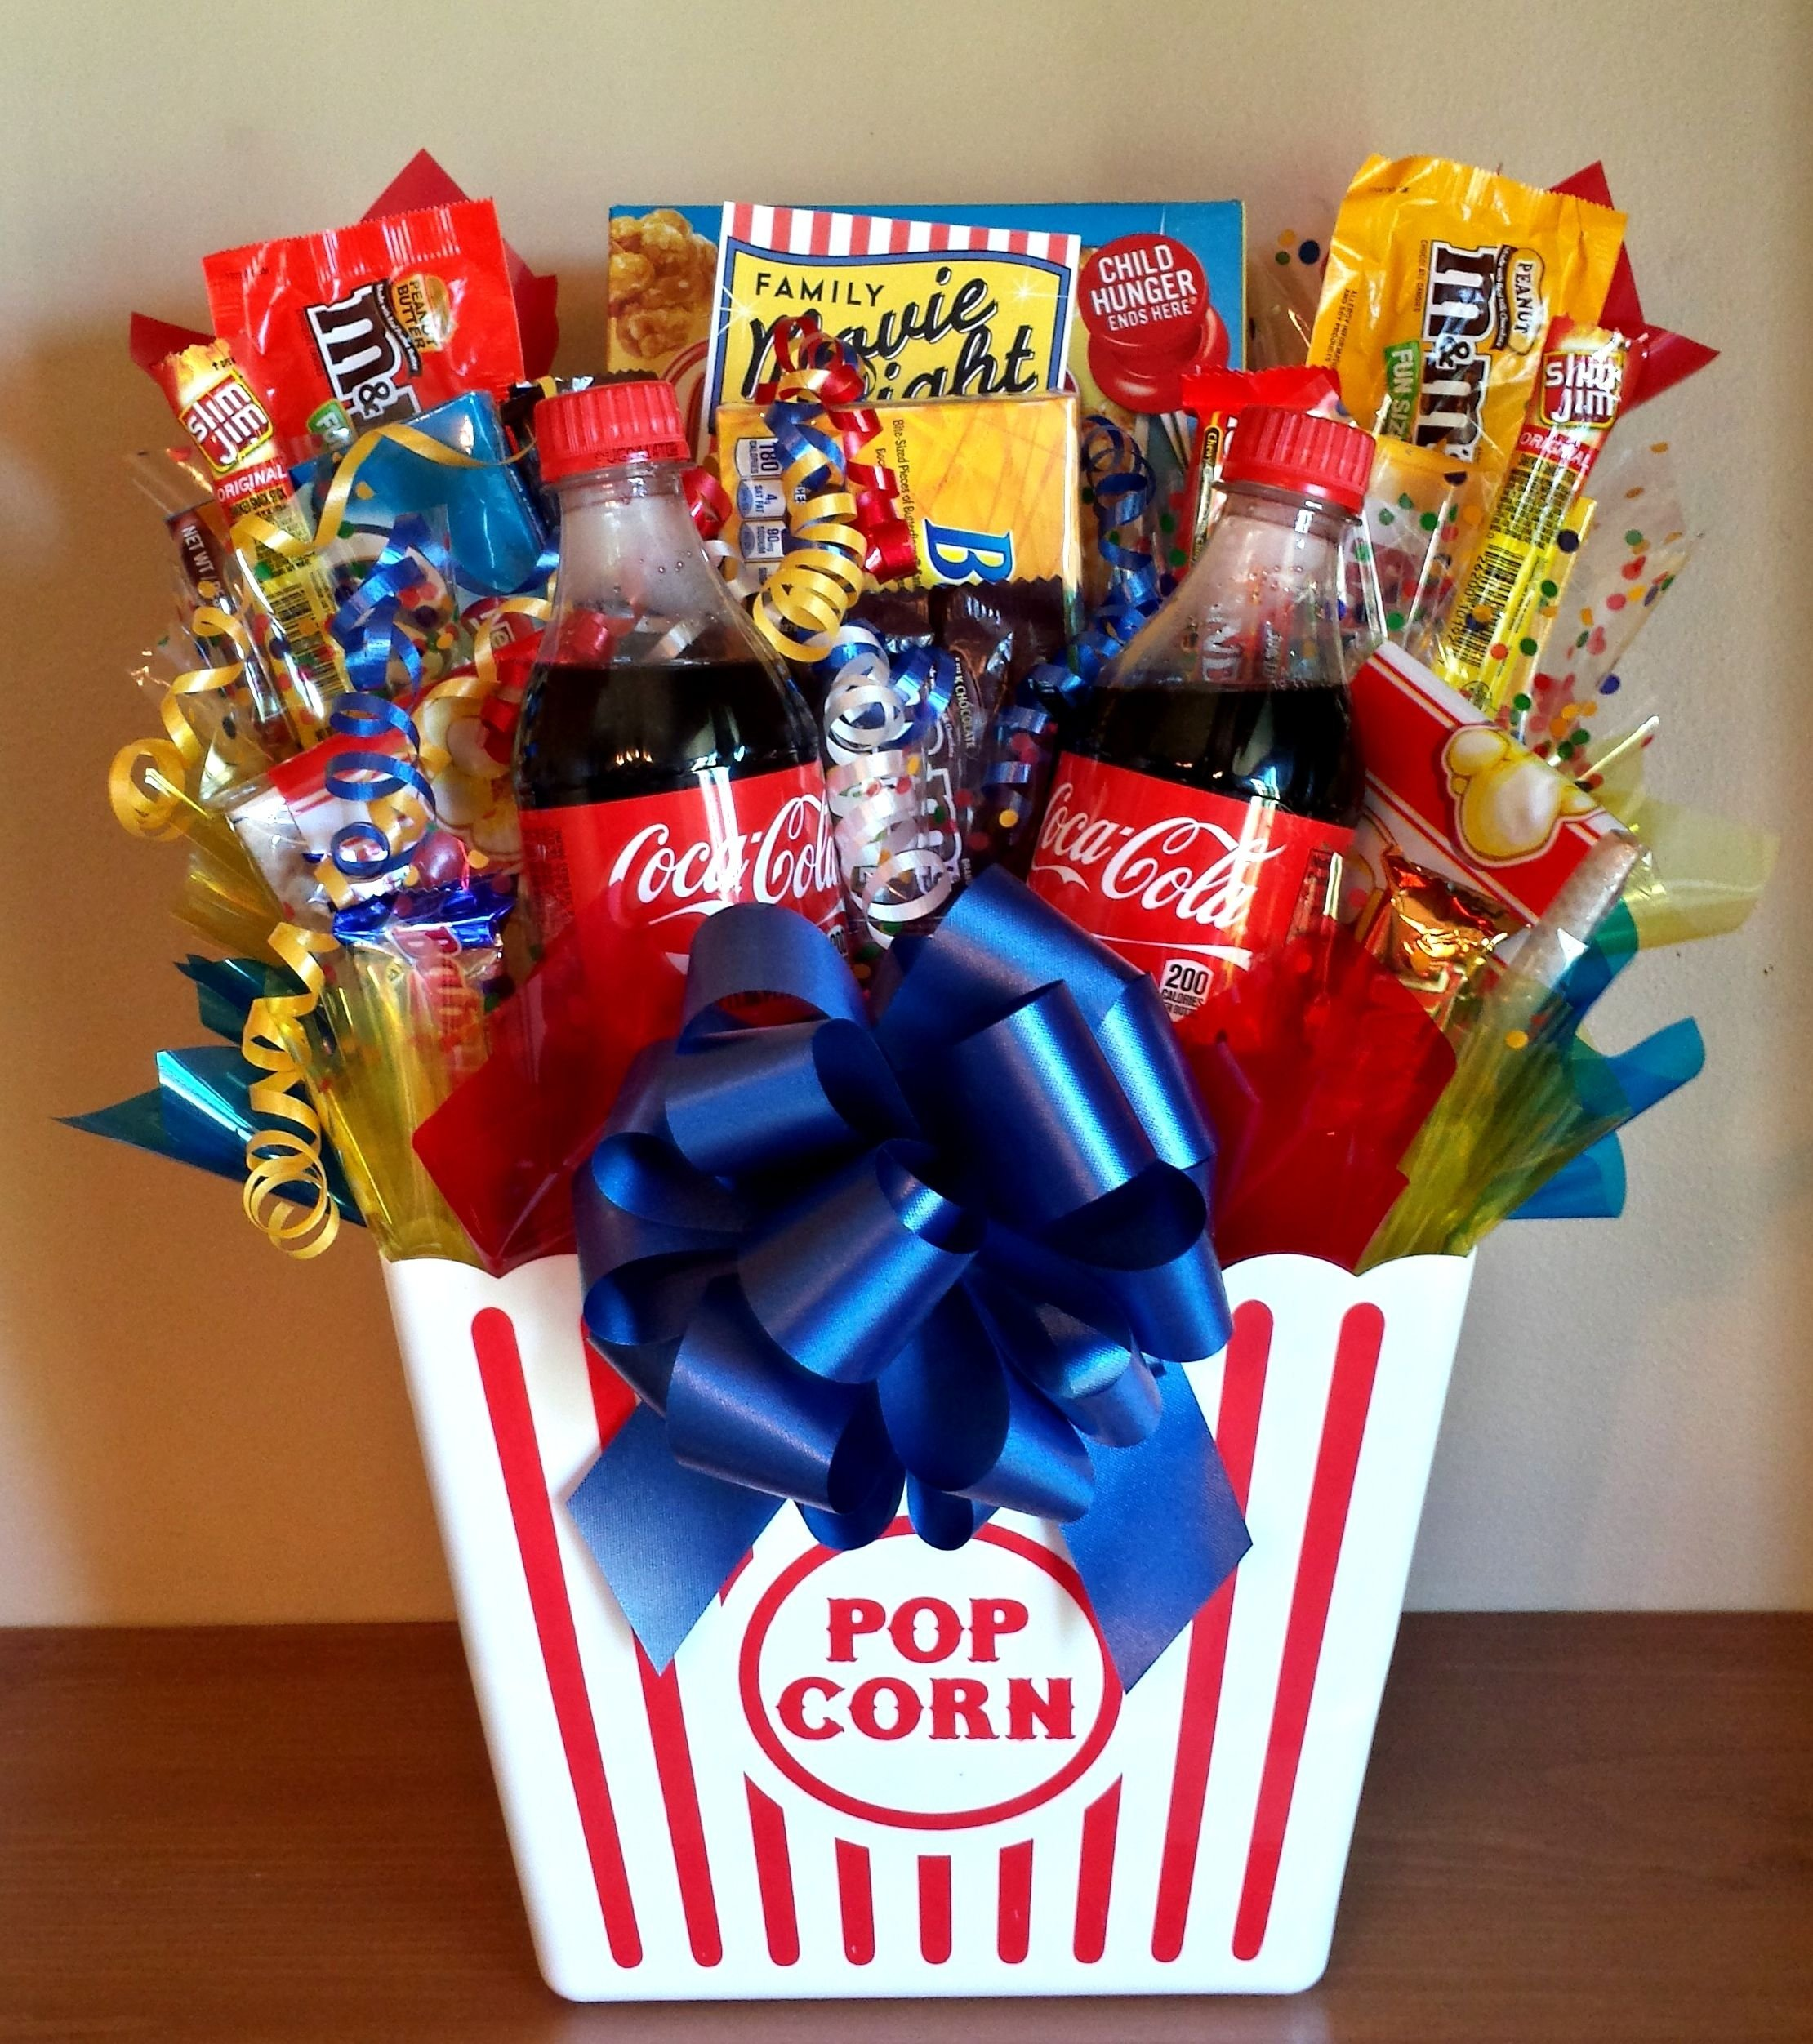 homemade gift ideas | movie night bouquet with drinks, sweets